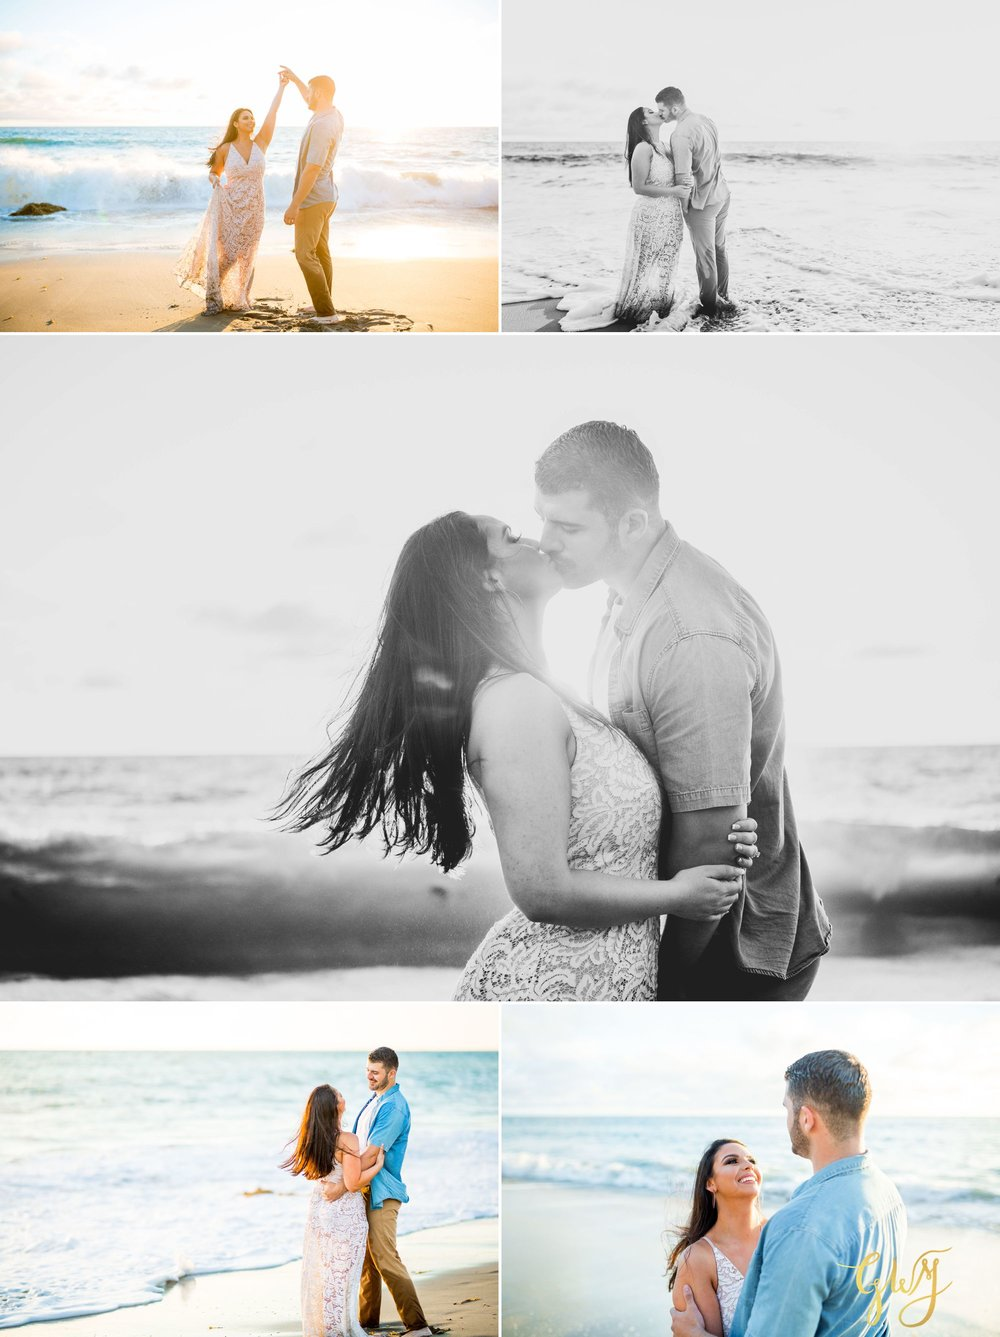 Alejandro + Rachel Mission San Juan Capistrano Strands Beach Dana Point Sunset Engagement by Glass Woods Media 14.jpg